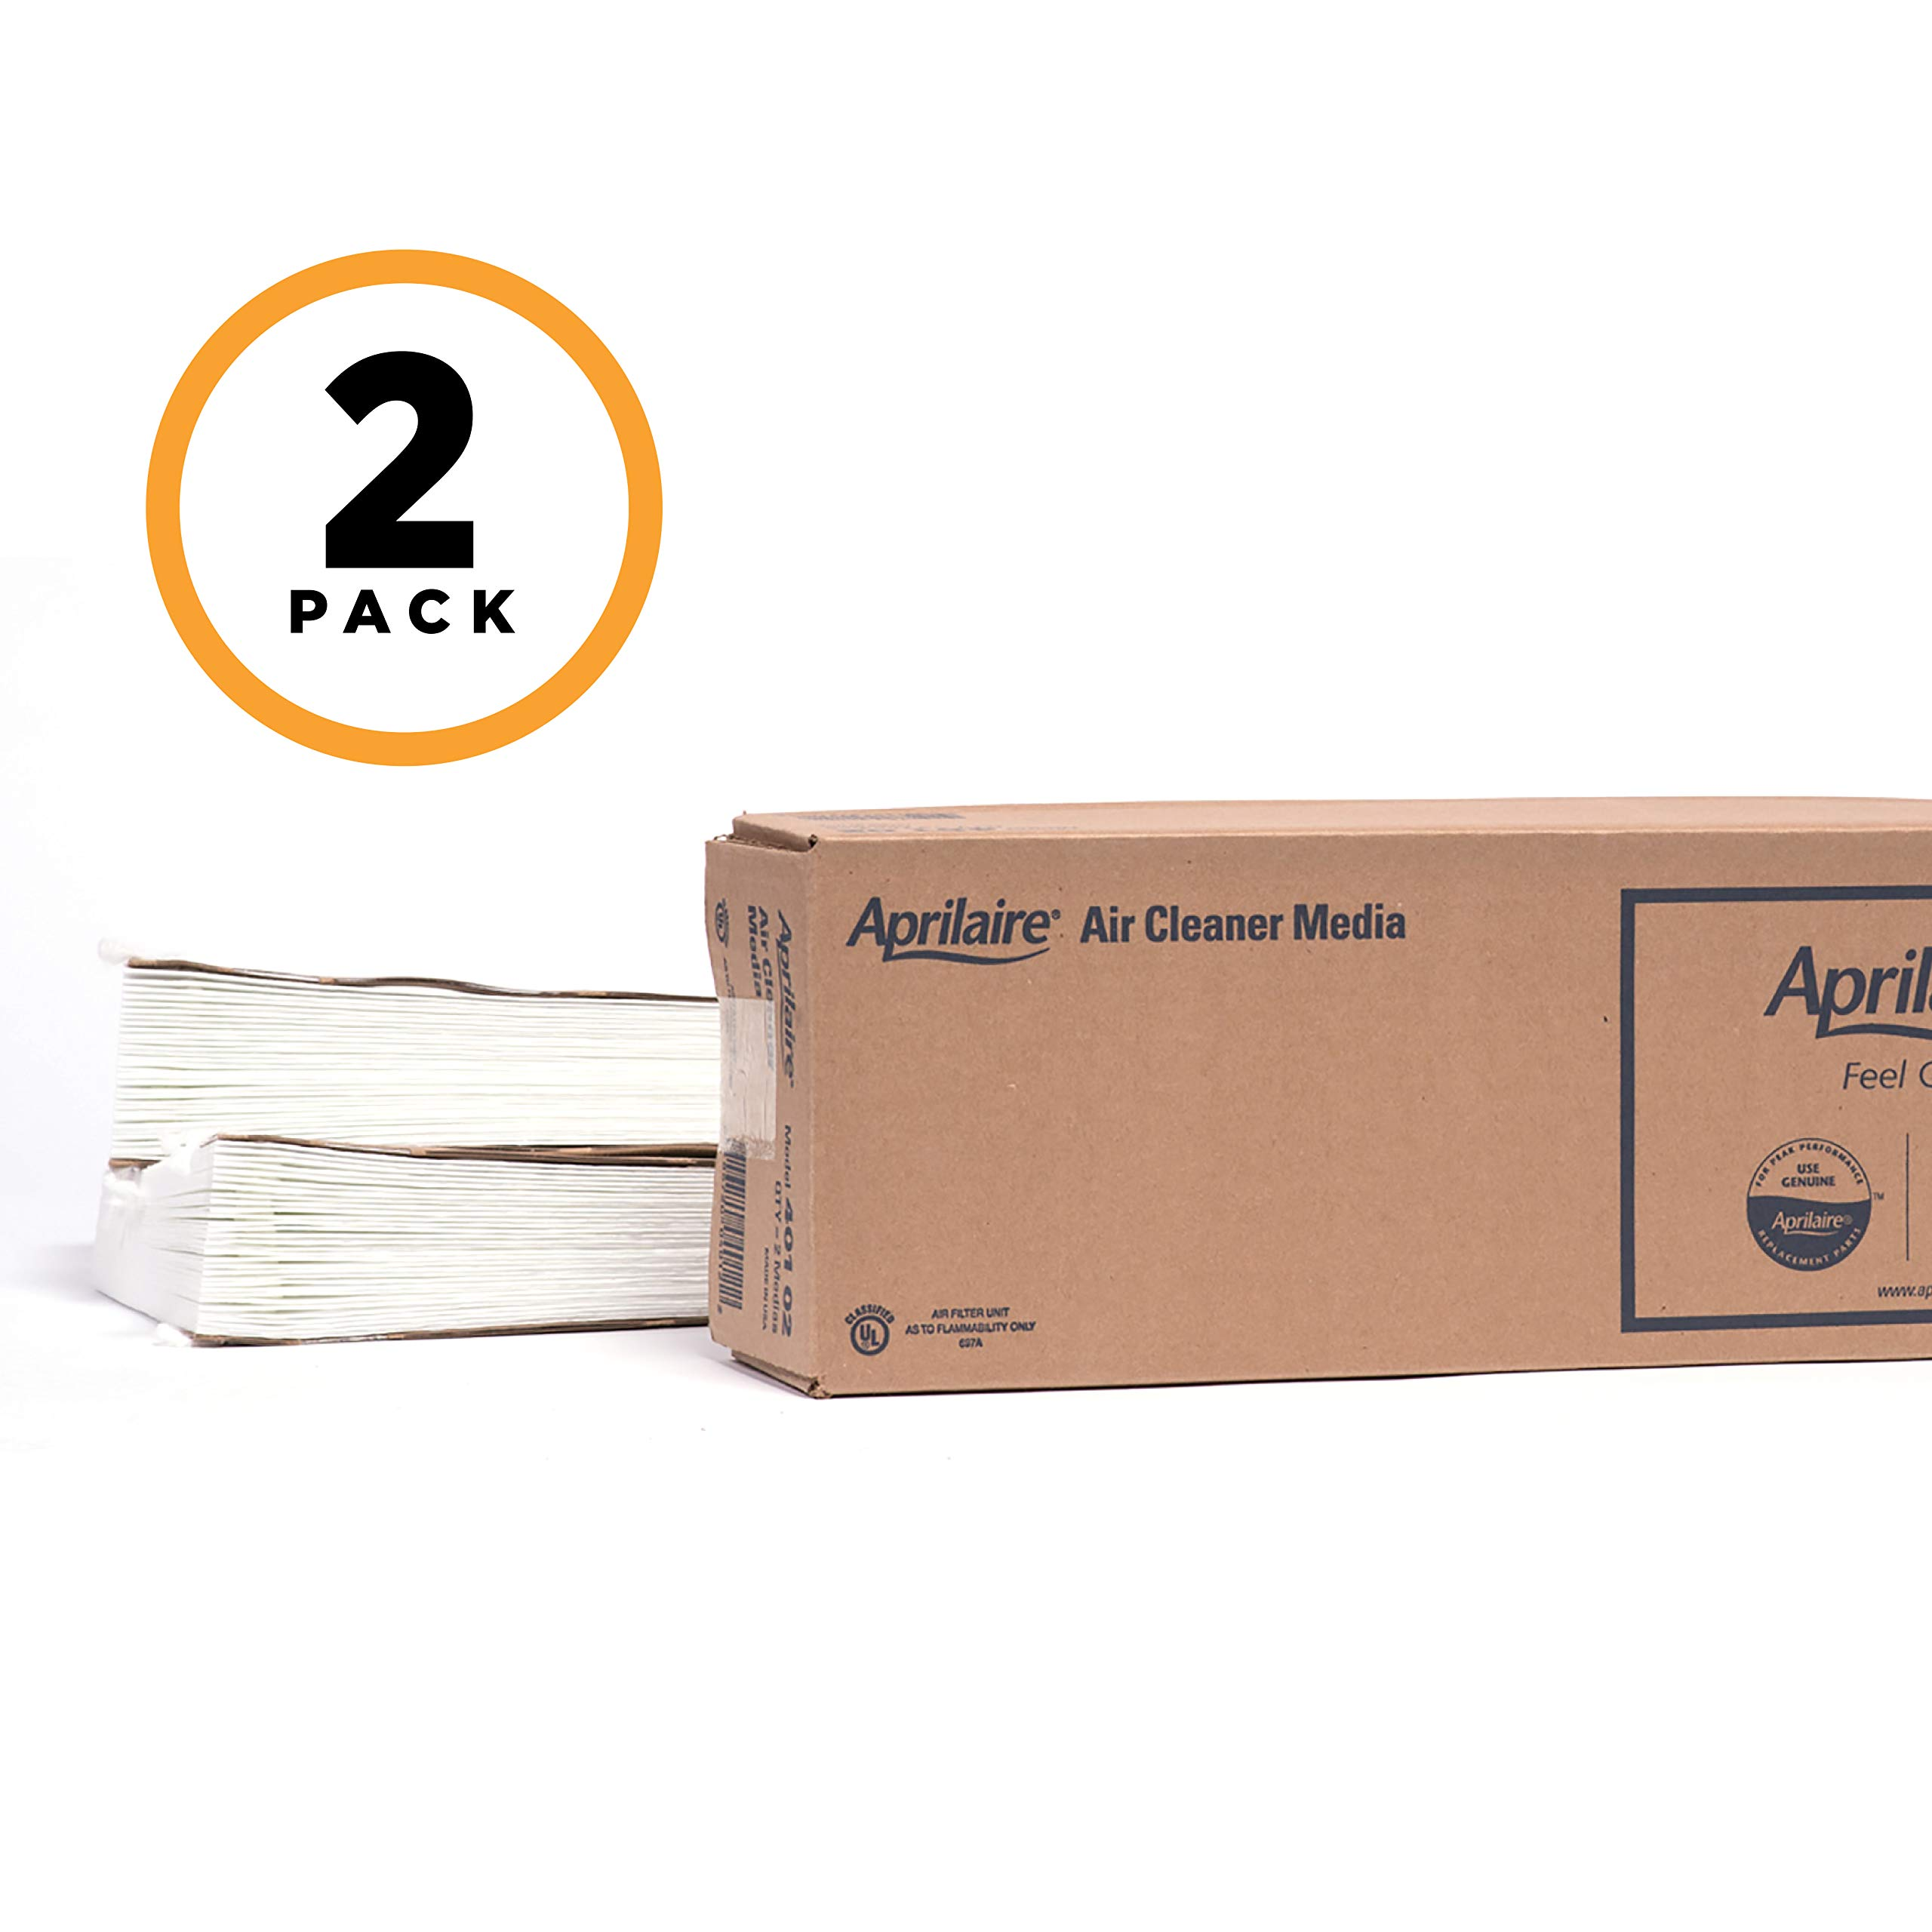 Aprilaire 401 Replacement Filter for Aprilaire Whole House Air Purifier Model: 2400, Space Gard 2400, MERV 10 (Pack of 2) by Aprilaire